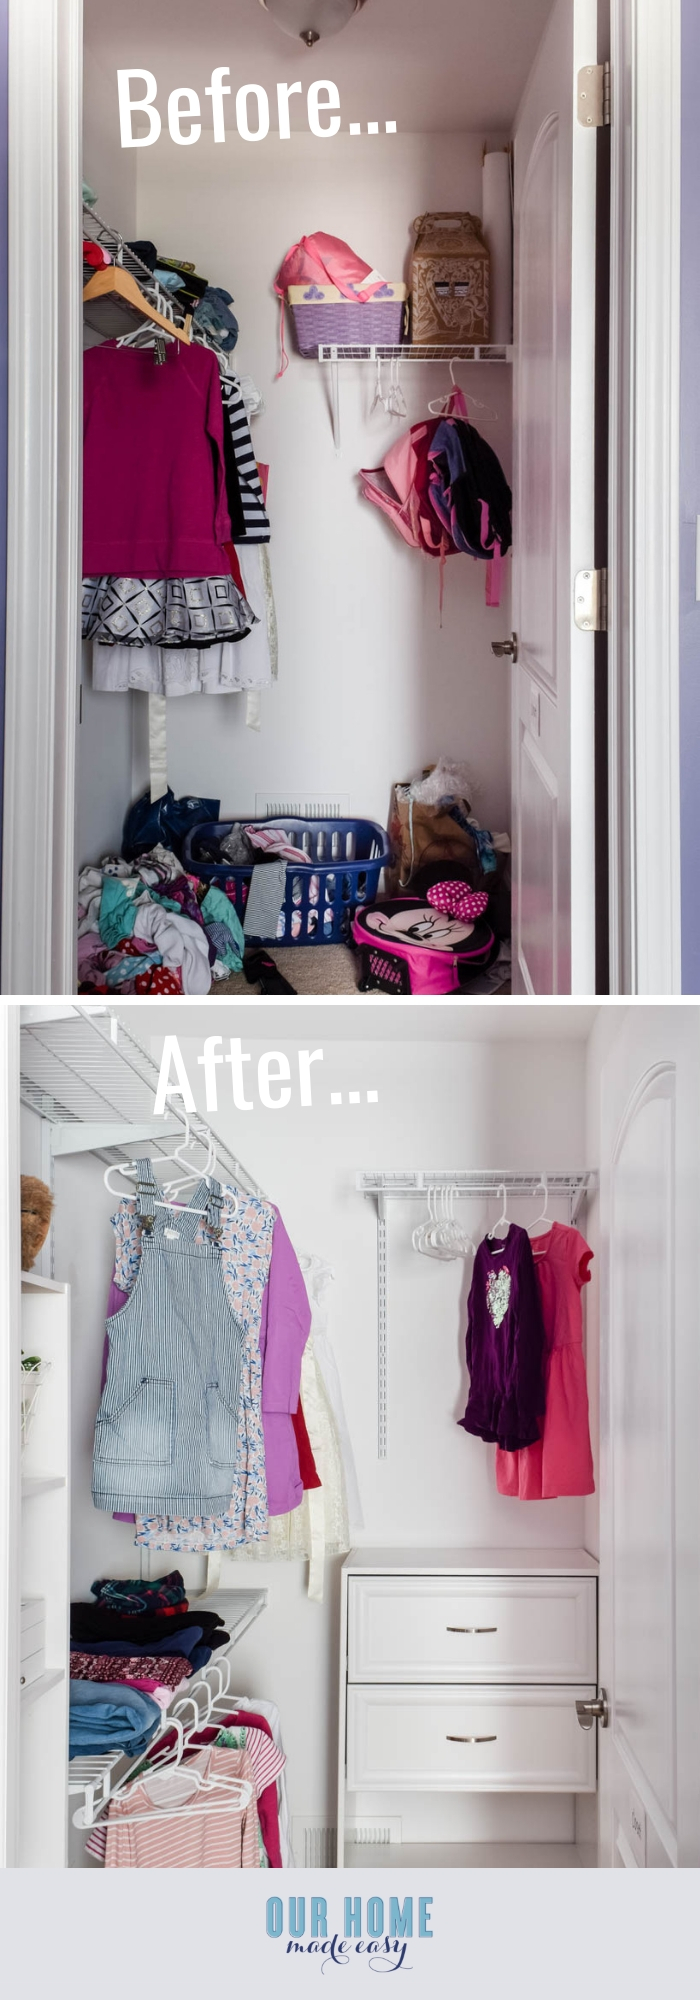 DIY small bedroom closet organization for a small budget! Makeover your closet in just one day save money compared to professional closet companies! #organization #bedroom #closet #ourhomemadeeasy